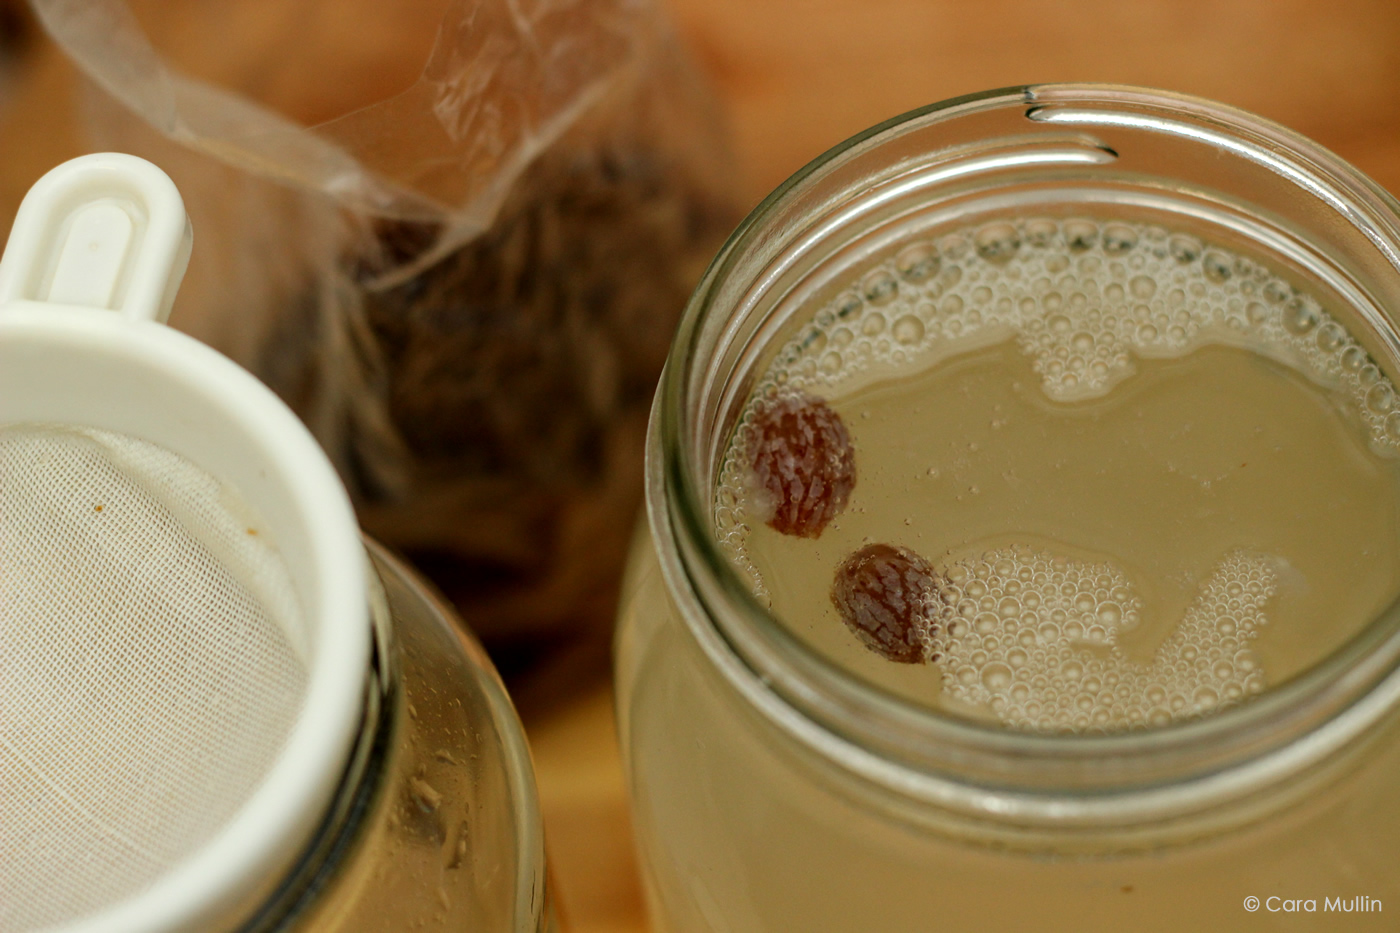 Water kefir grains or cultures and raisins